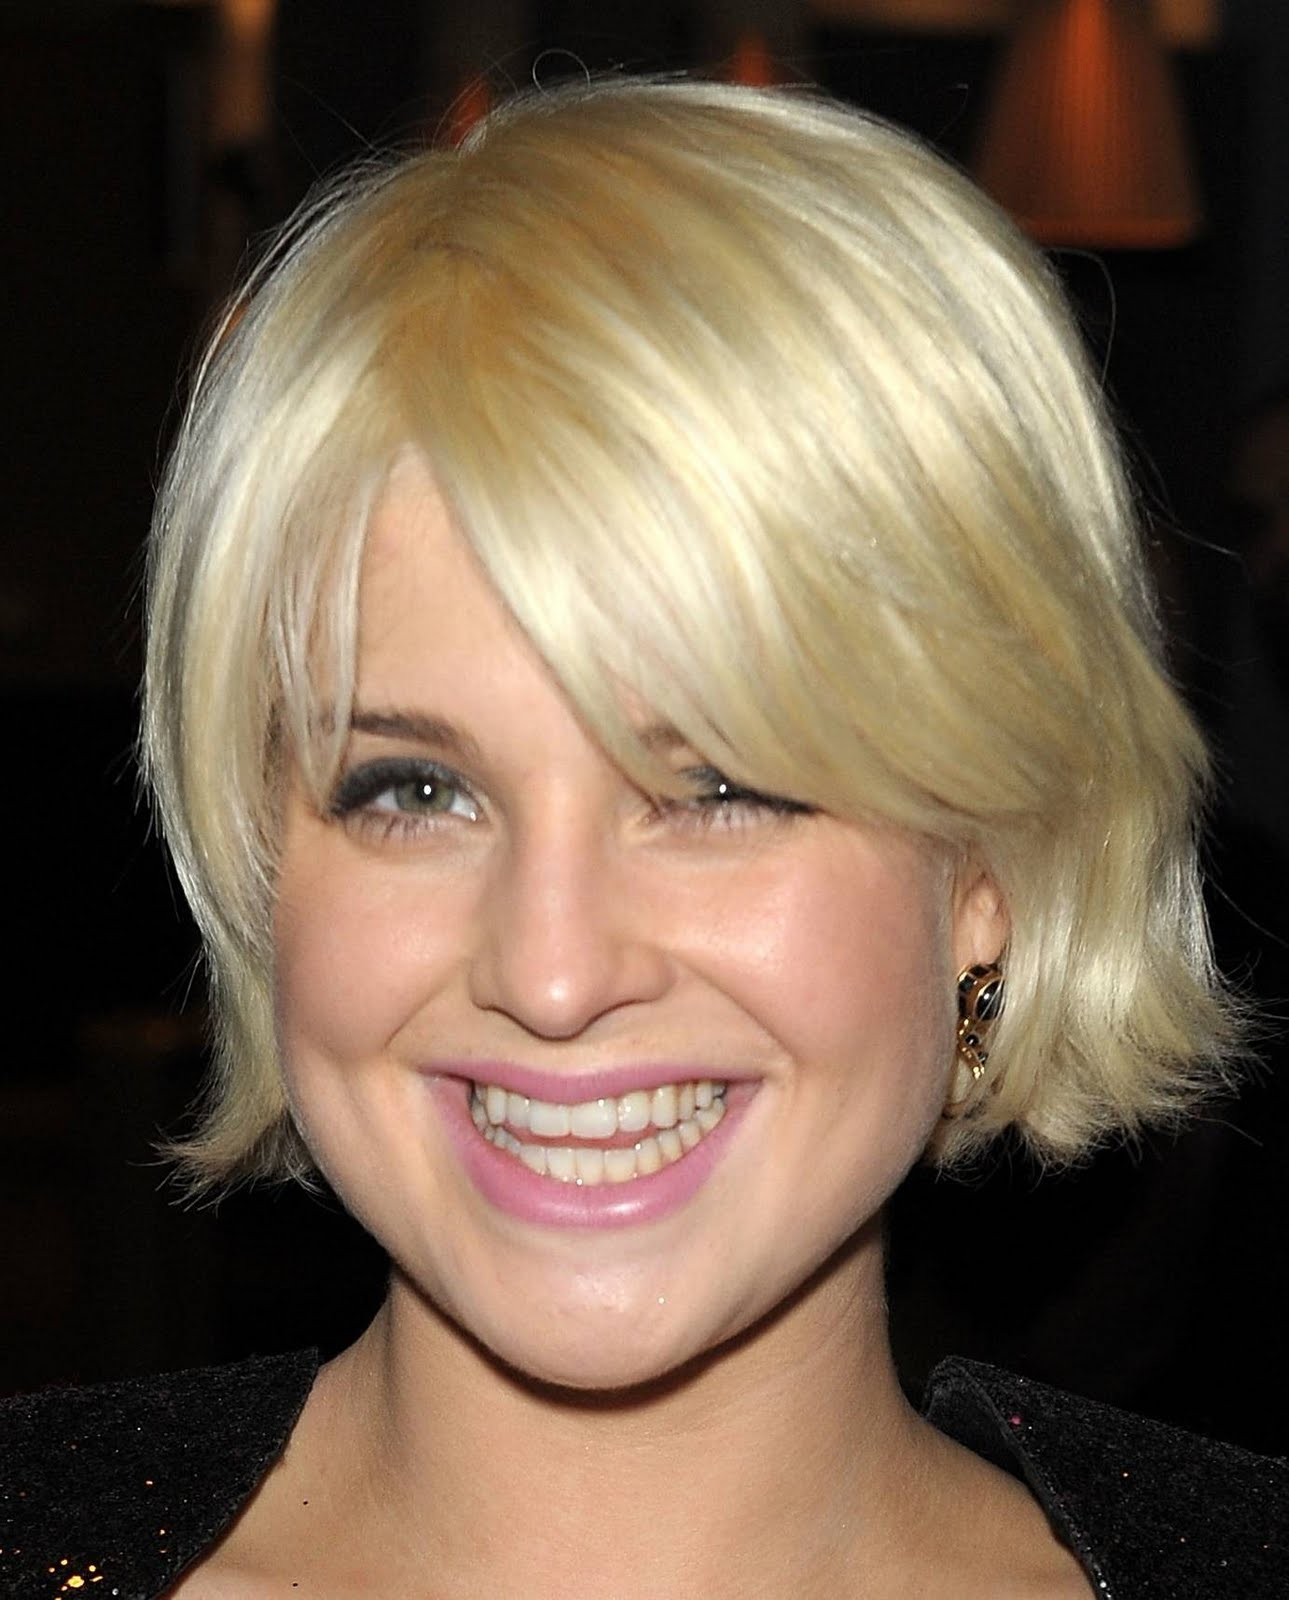 With Short Blond Hair